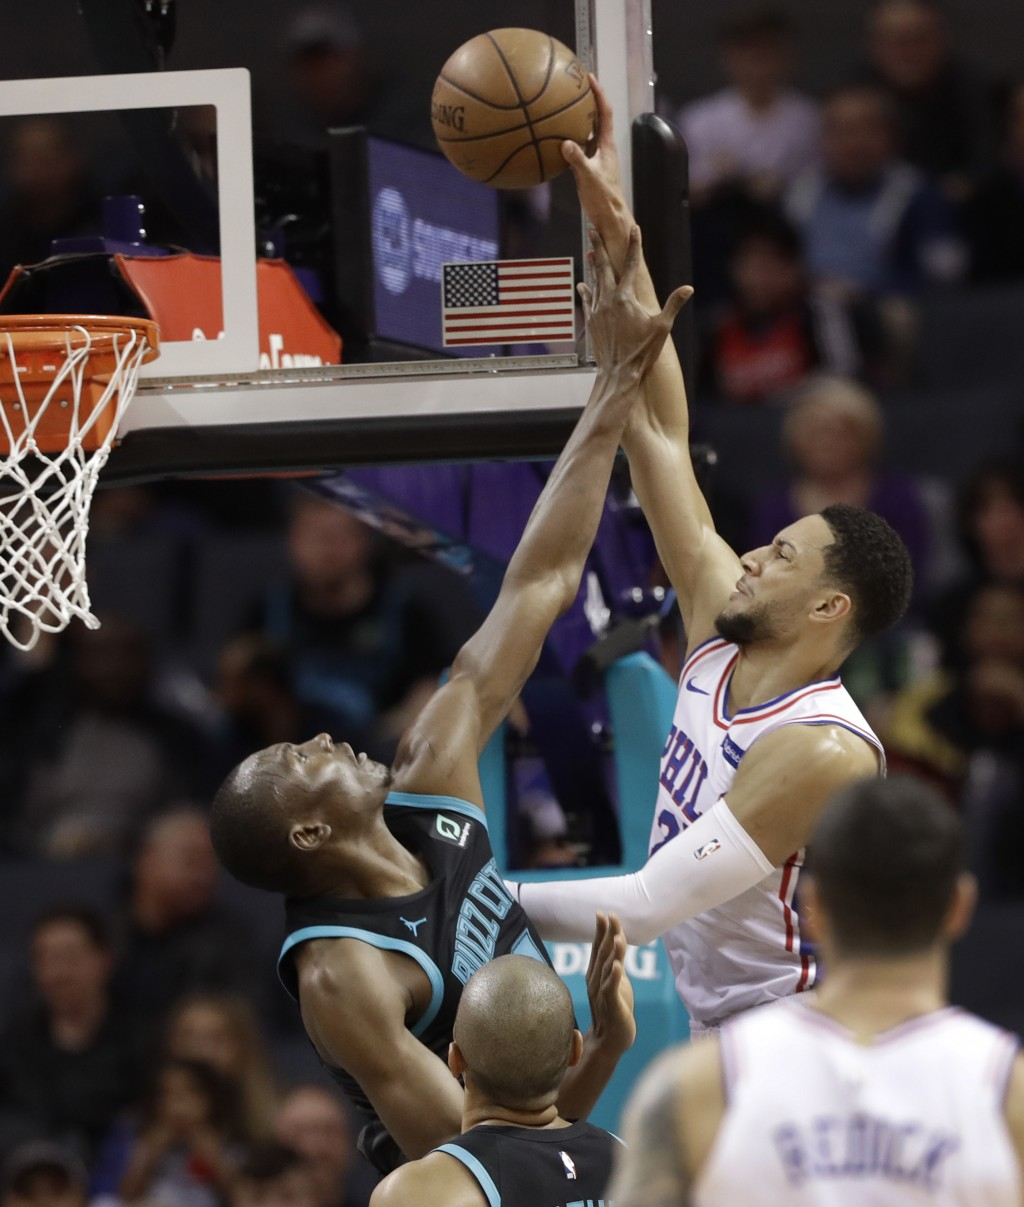 Philadelphia 76ers' Ben Simmons (25) is fouled by Charlotte Hornets' Bismack Biyombo (8) during the first half of an NBA basketball game in Charlotte,